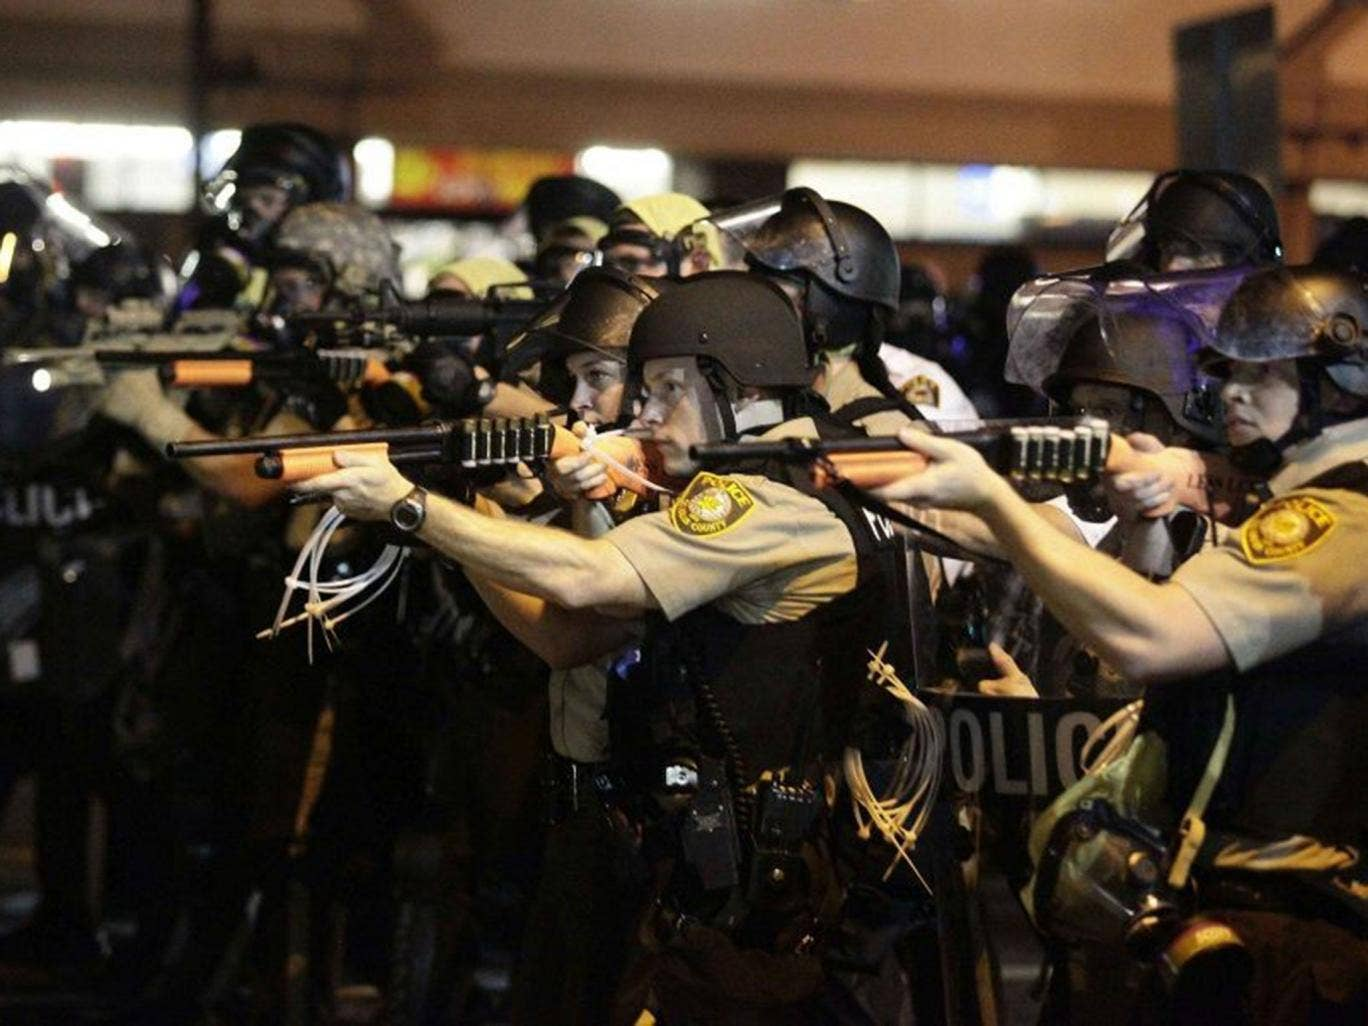 Officers point their weapons at protesters in Ferguson, Missouri